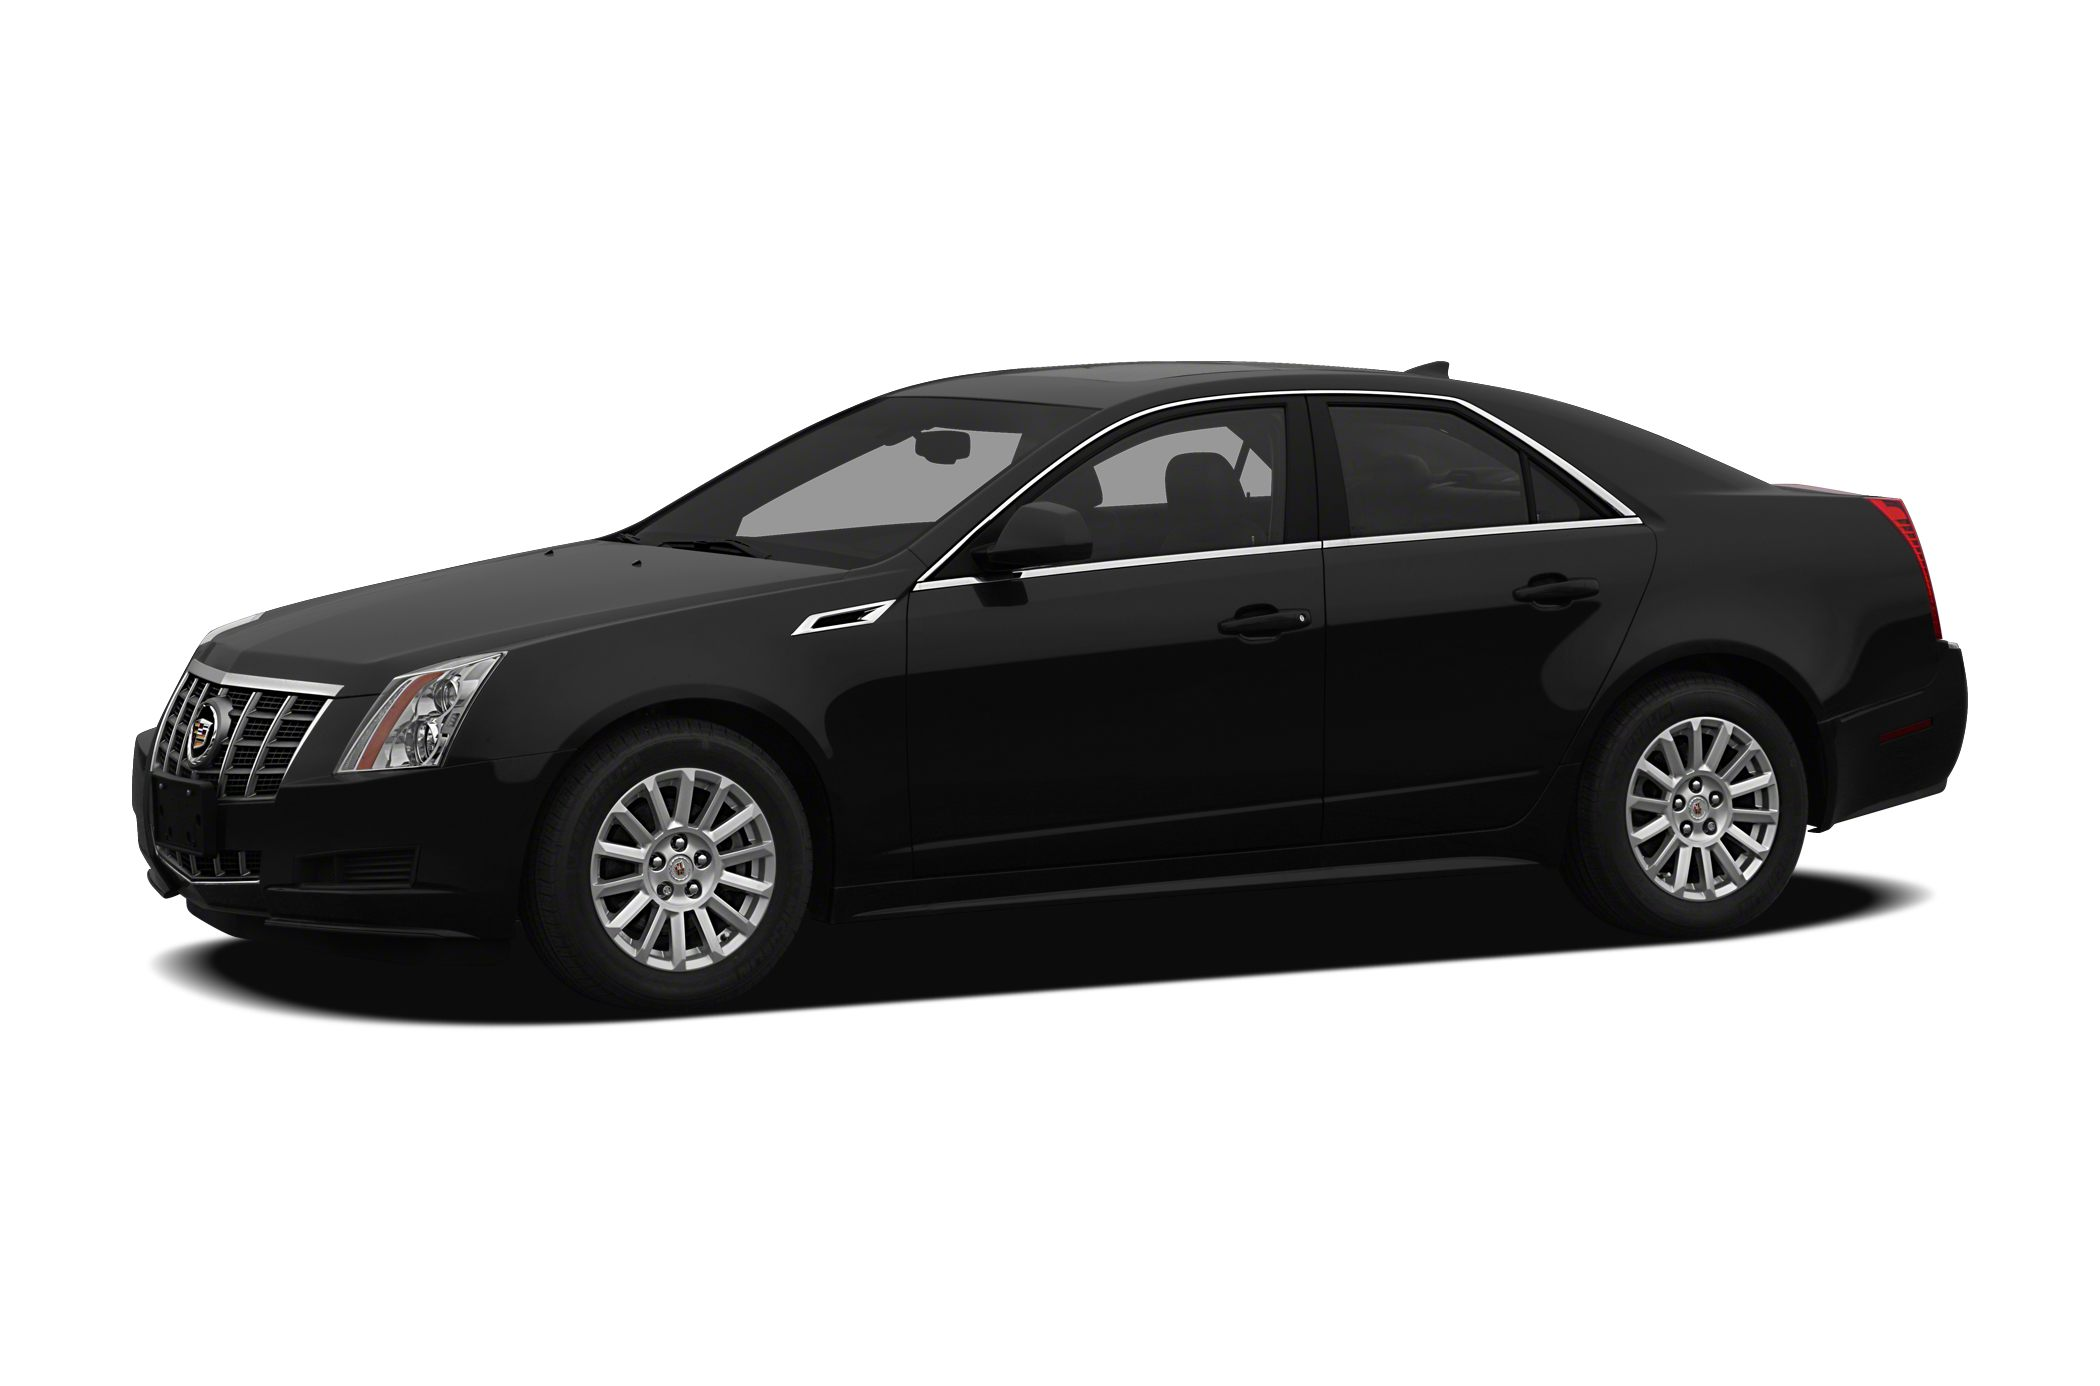 2012 Cadillac CTS Luxury Sedan for sale in Beaver for $26,990 with 28,430 miles